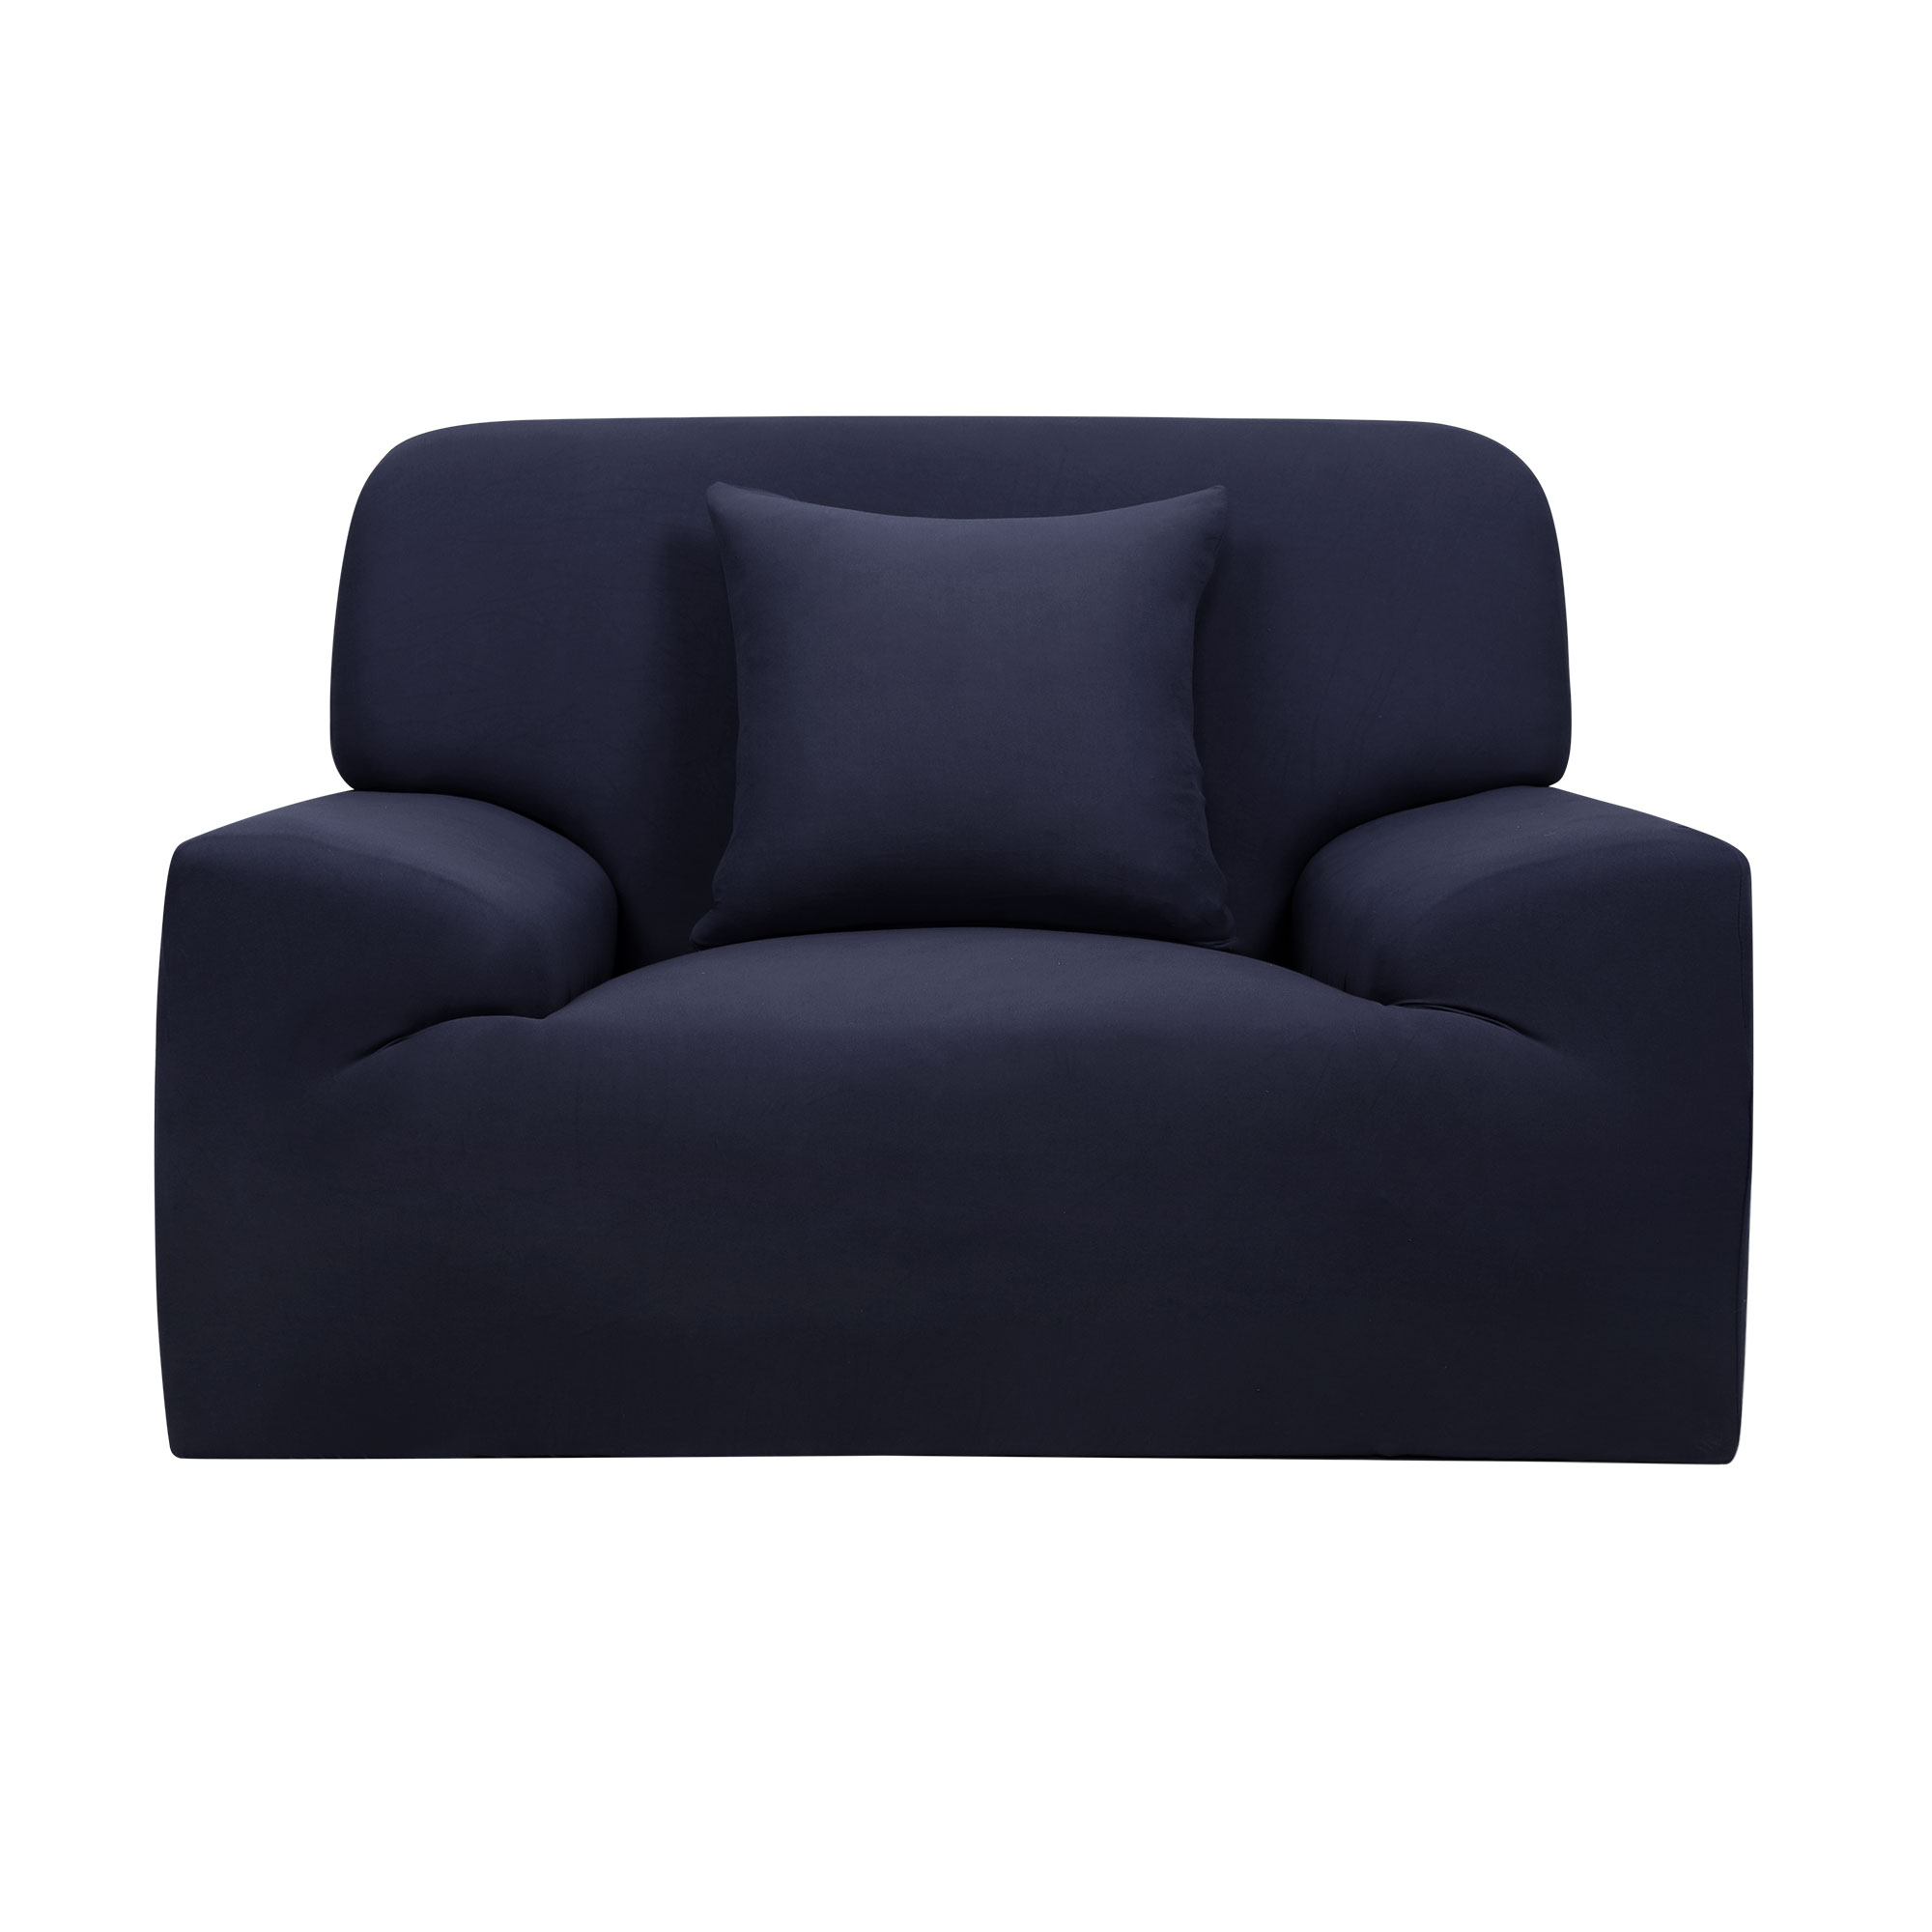 Home Chair Sofa Couch Stretch Protector Cover Slipcover Dark Blue 35''-55''